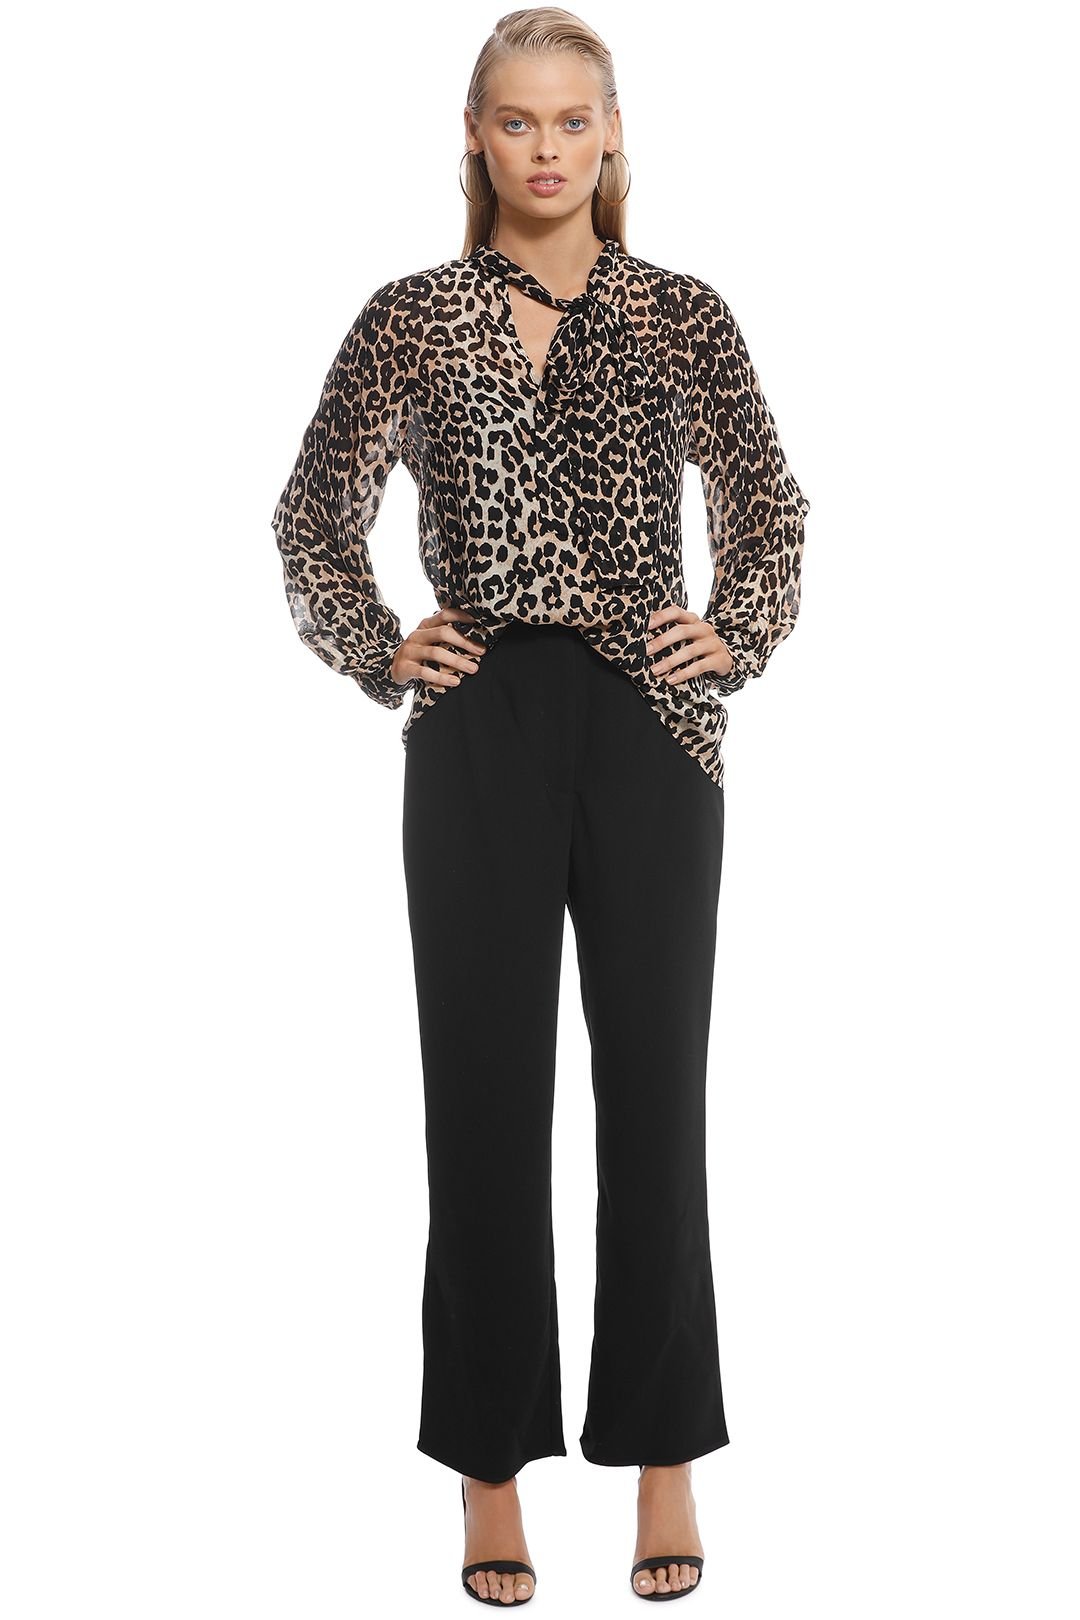 Ministry of Style - Nightfall Top - Front